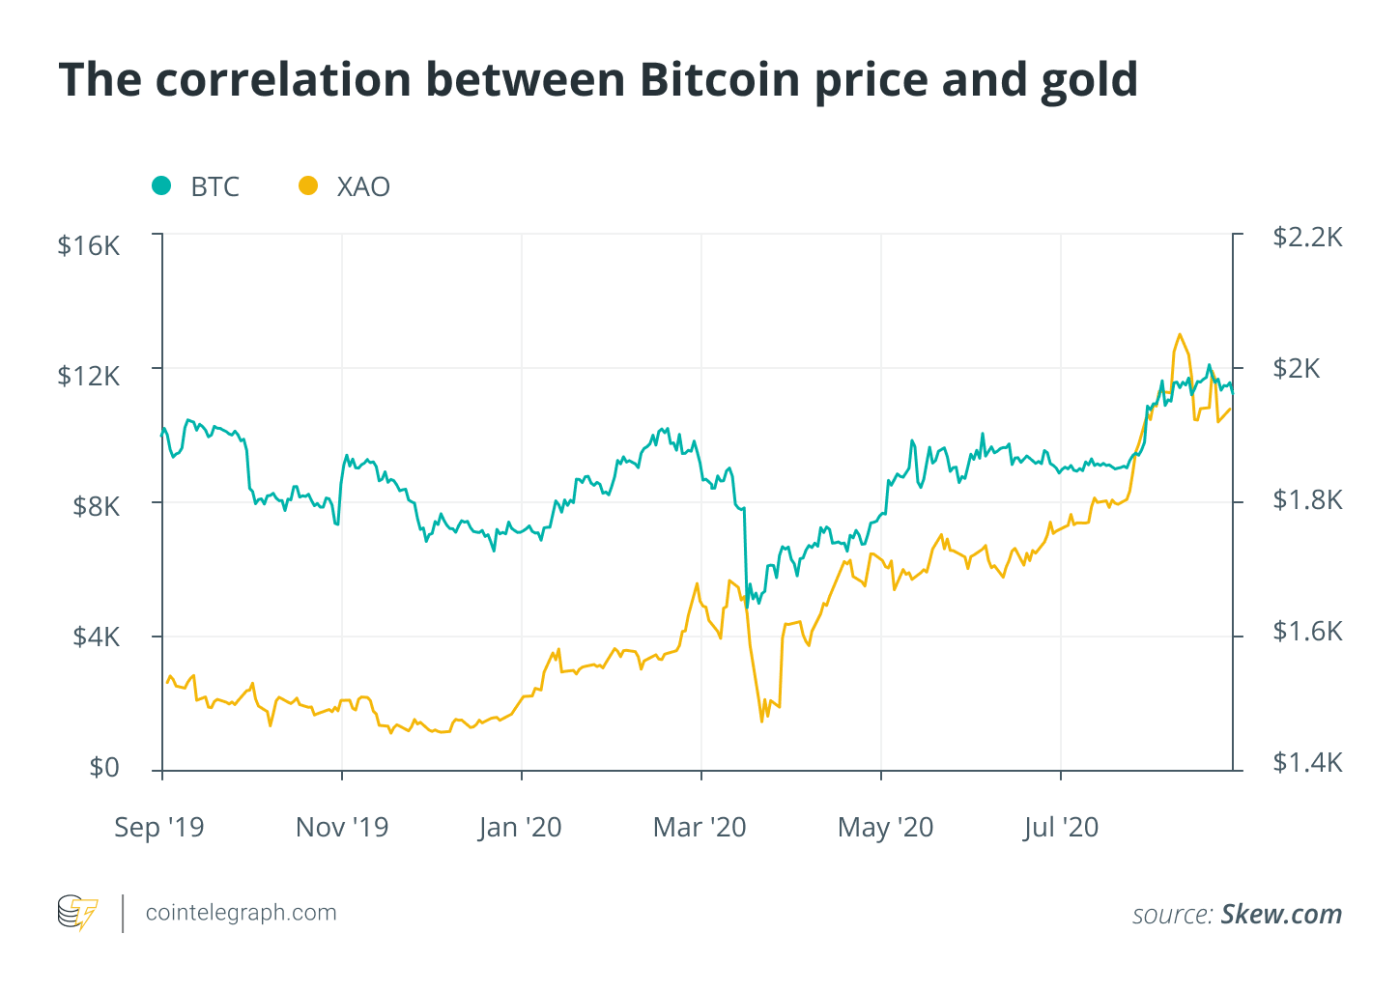 The correlation between Bitcoin price and gold